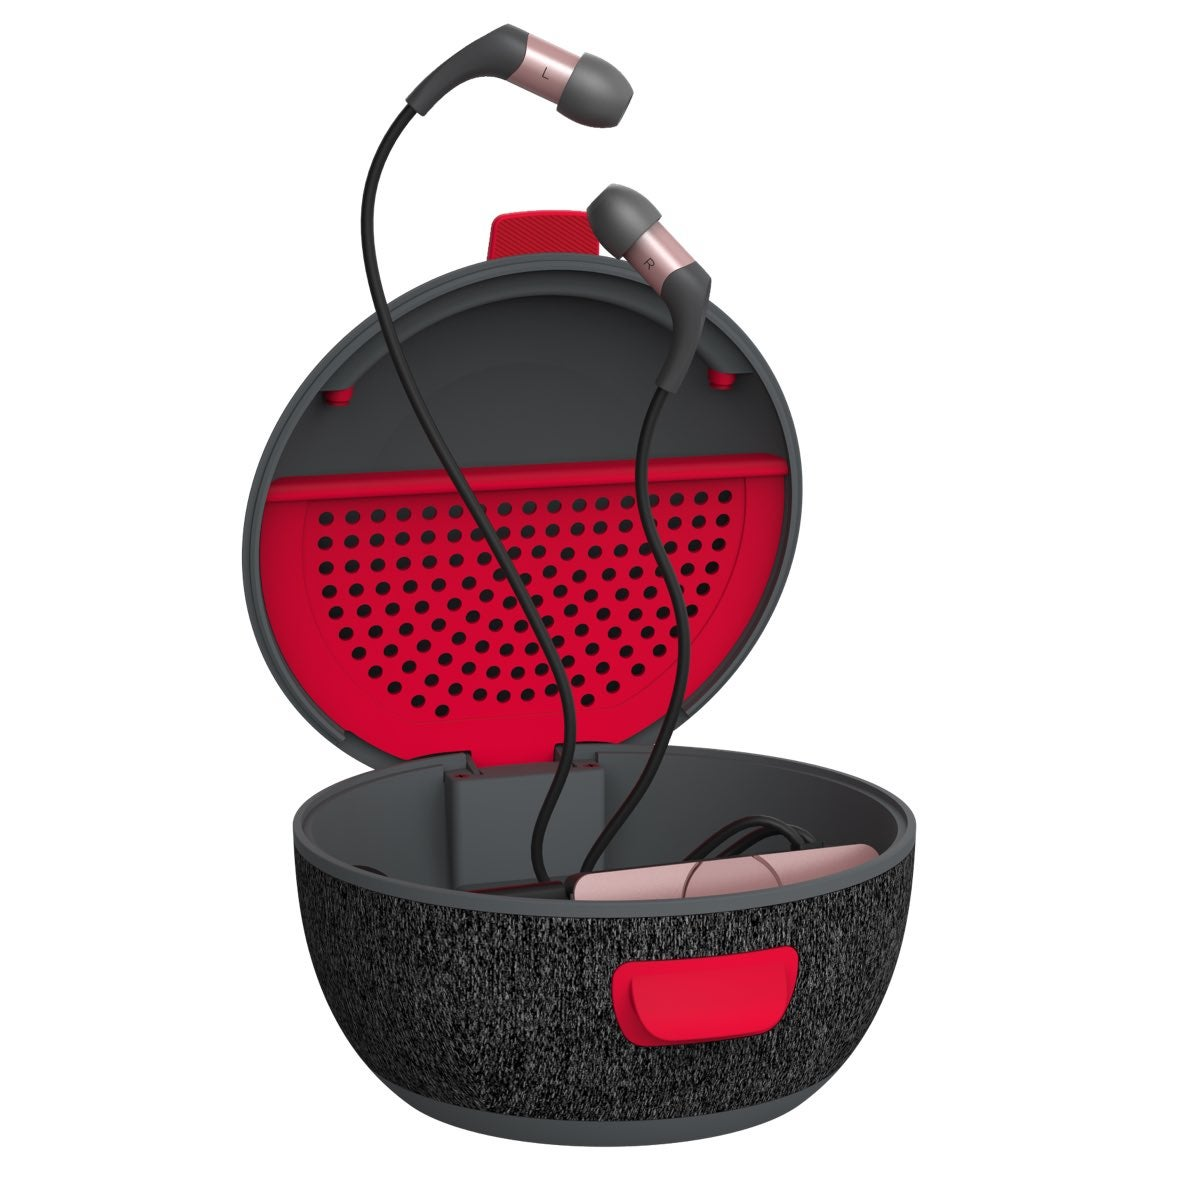 IFROGZ Cocoon Earbud Charging Case (Grey/Red)